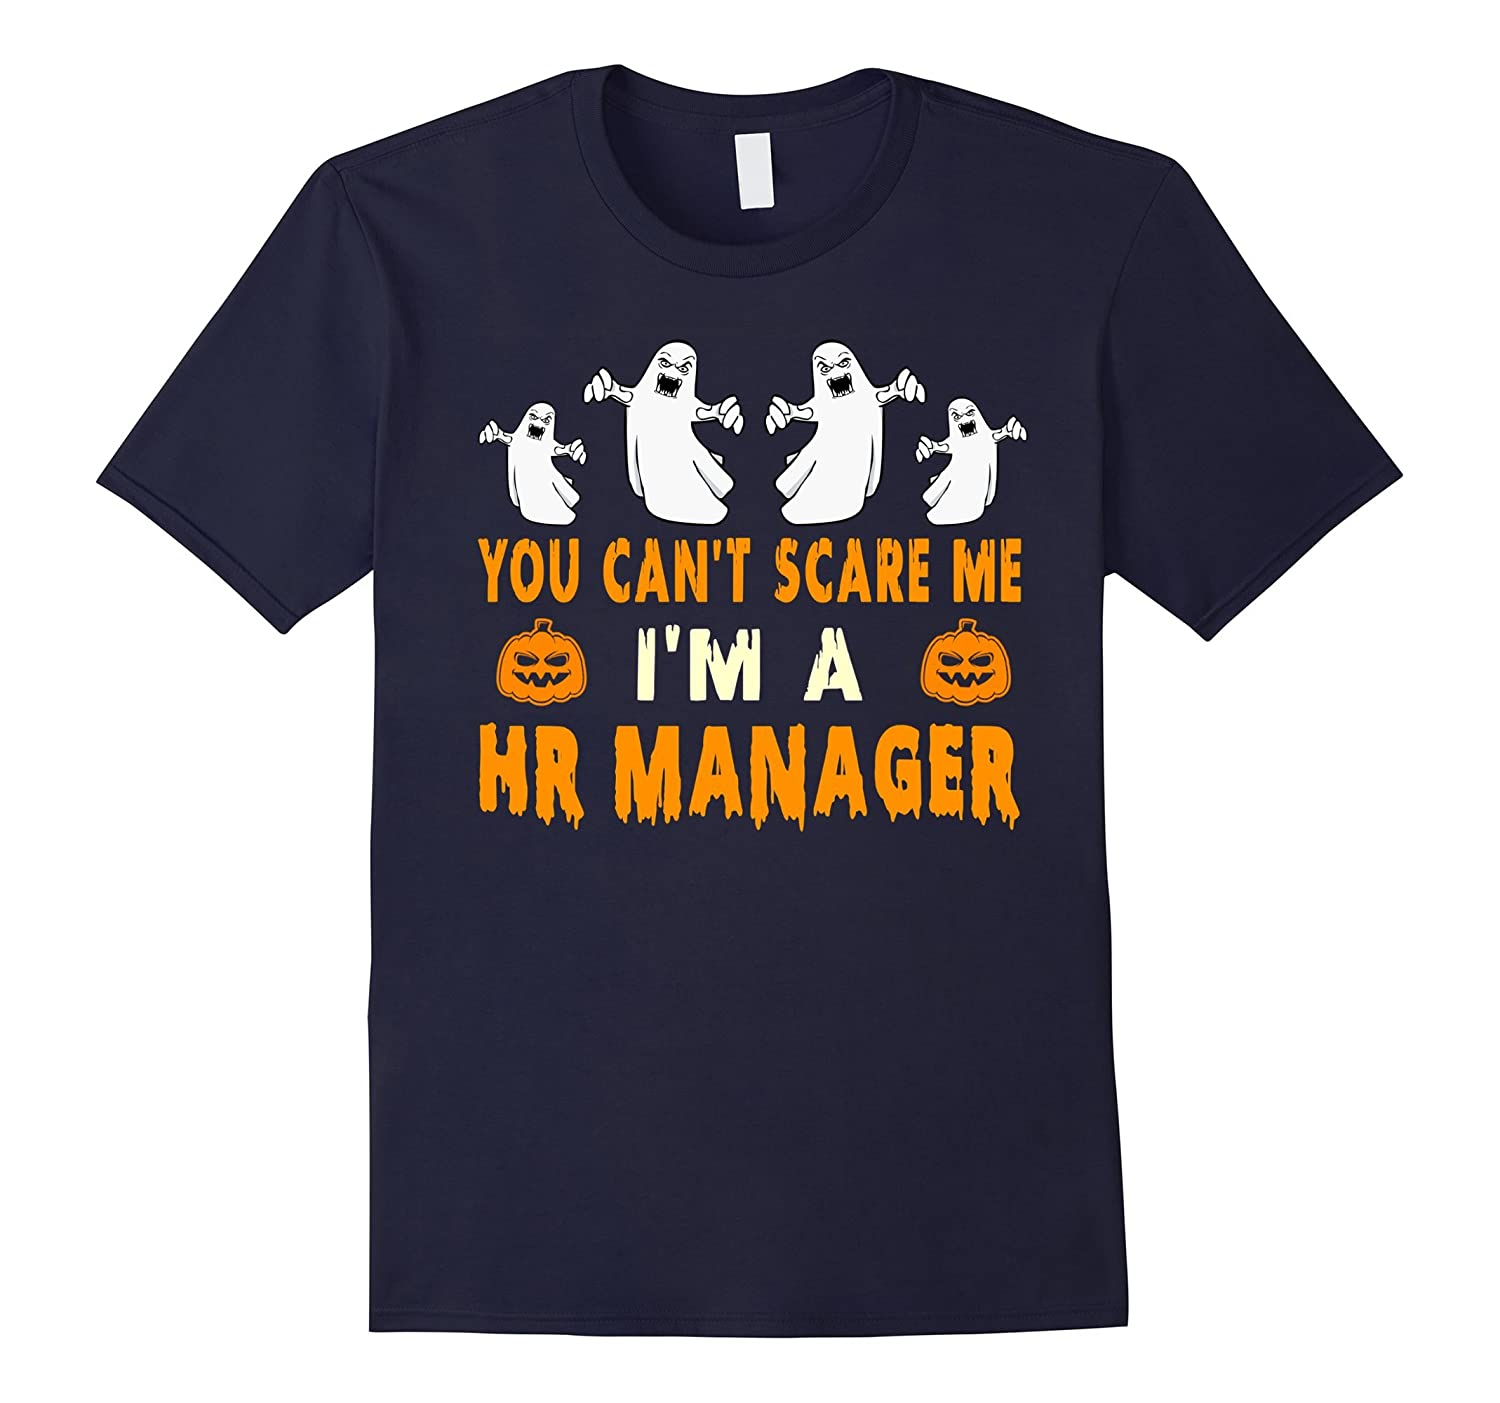 You Cant Scare Me - I'm A Hr Manager T Shirt-TH